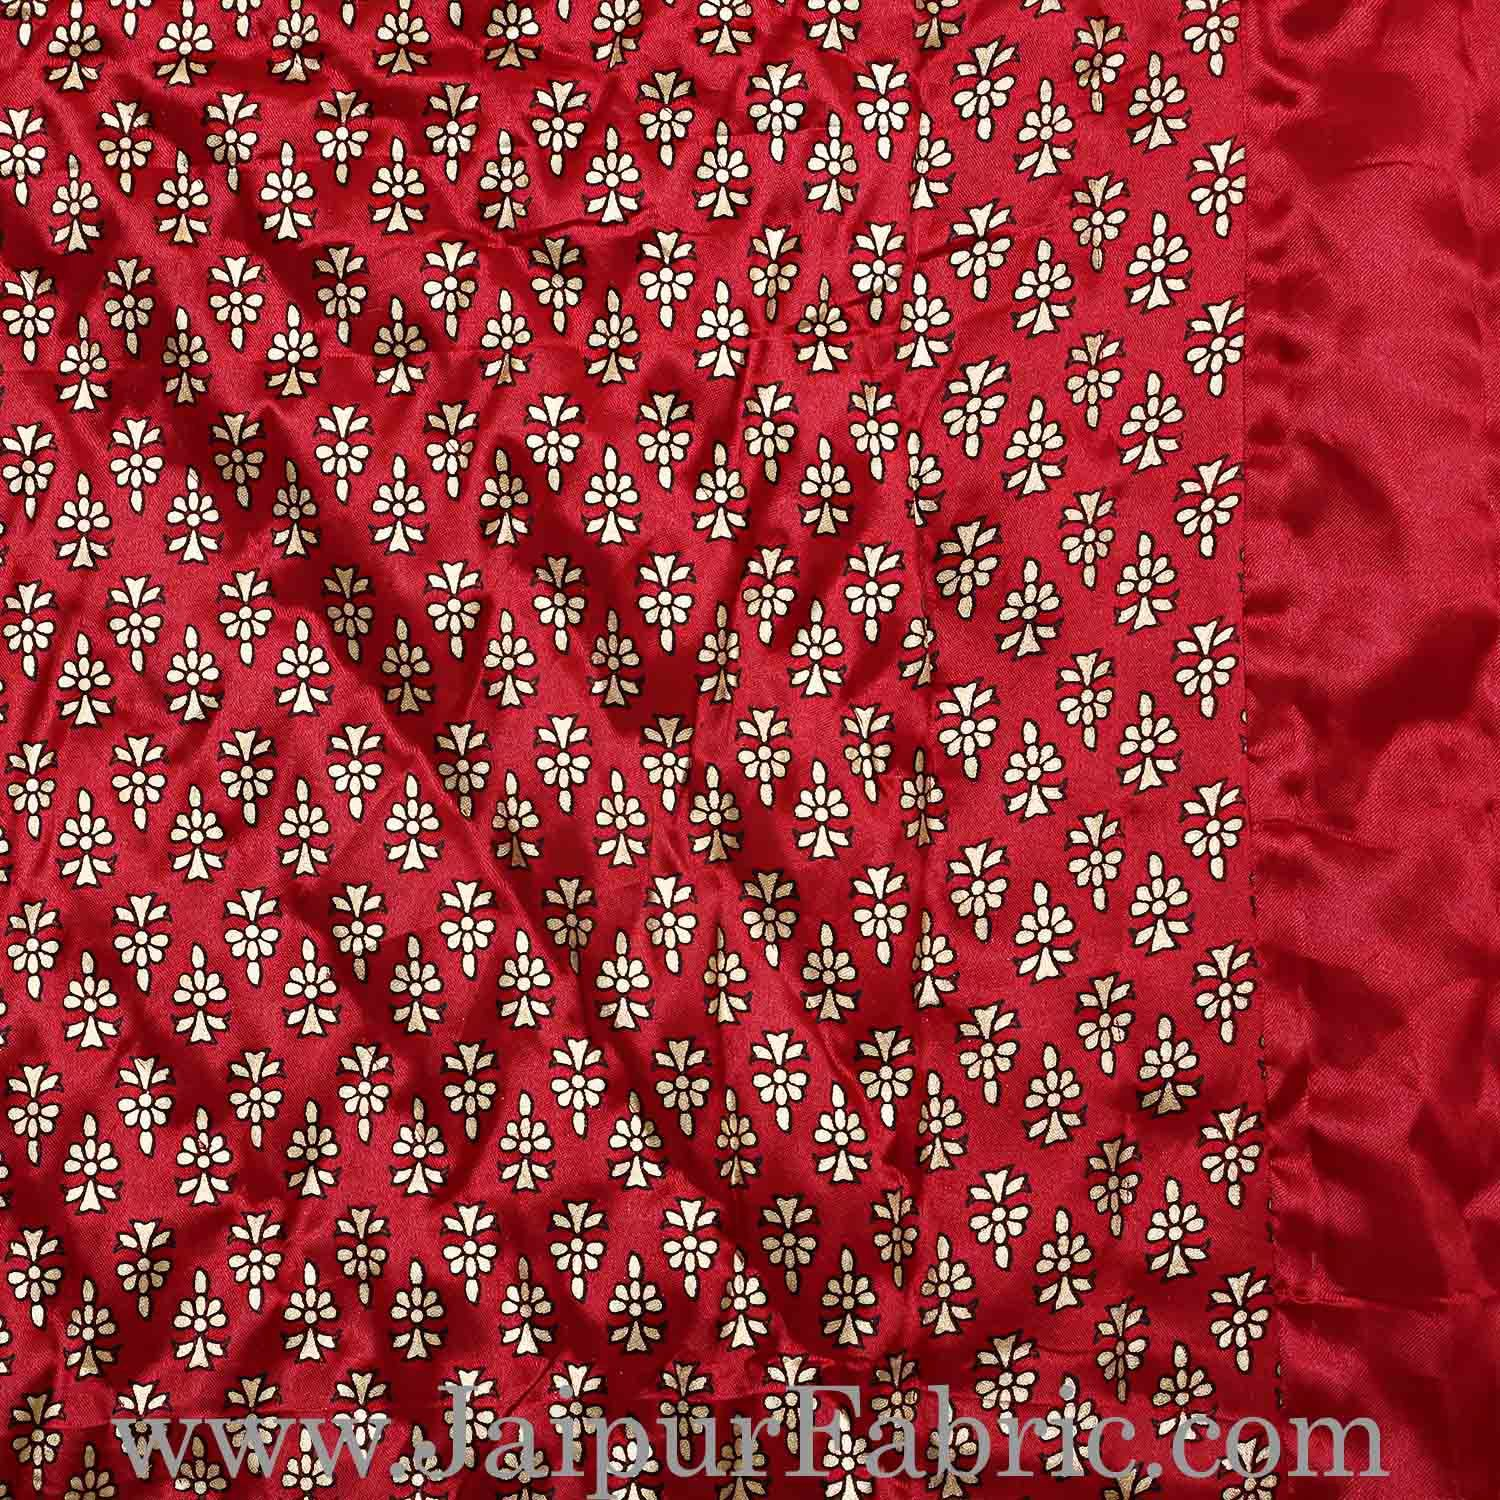 Single Quilt Maroon Base Golden Floral Print Silk